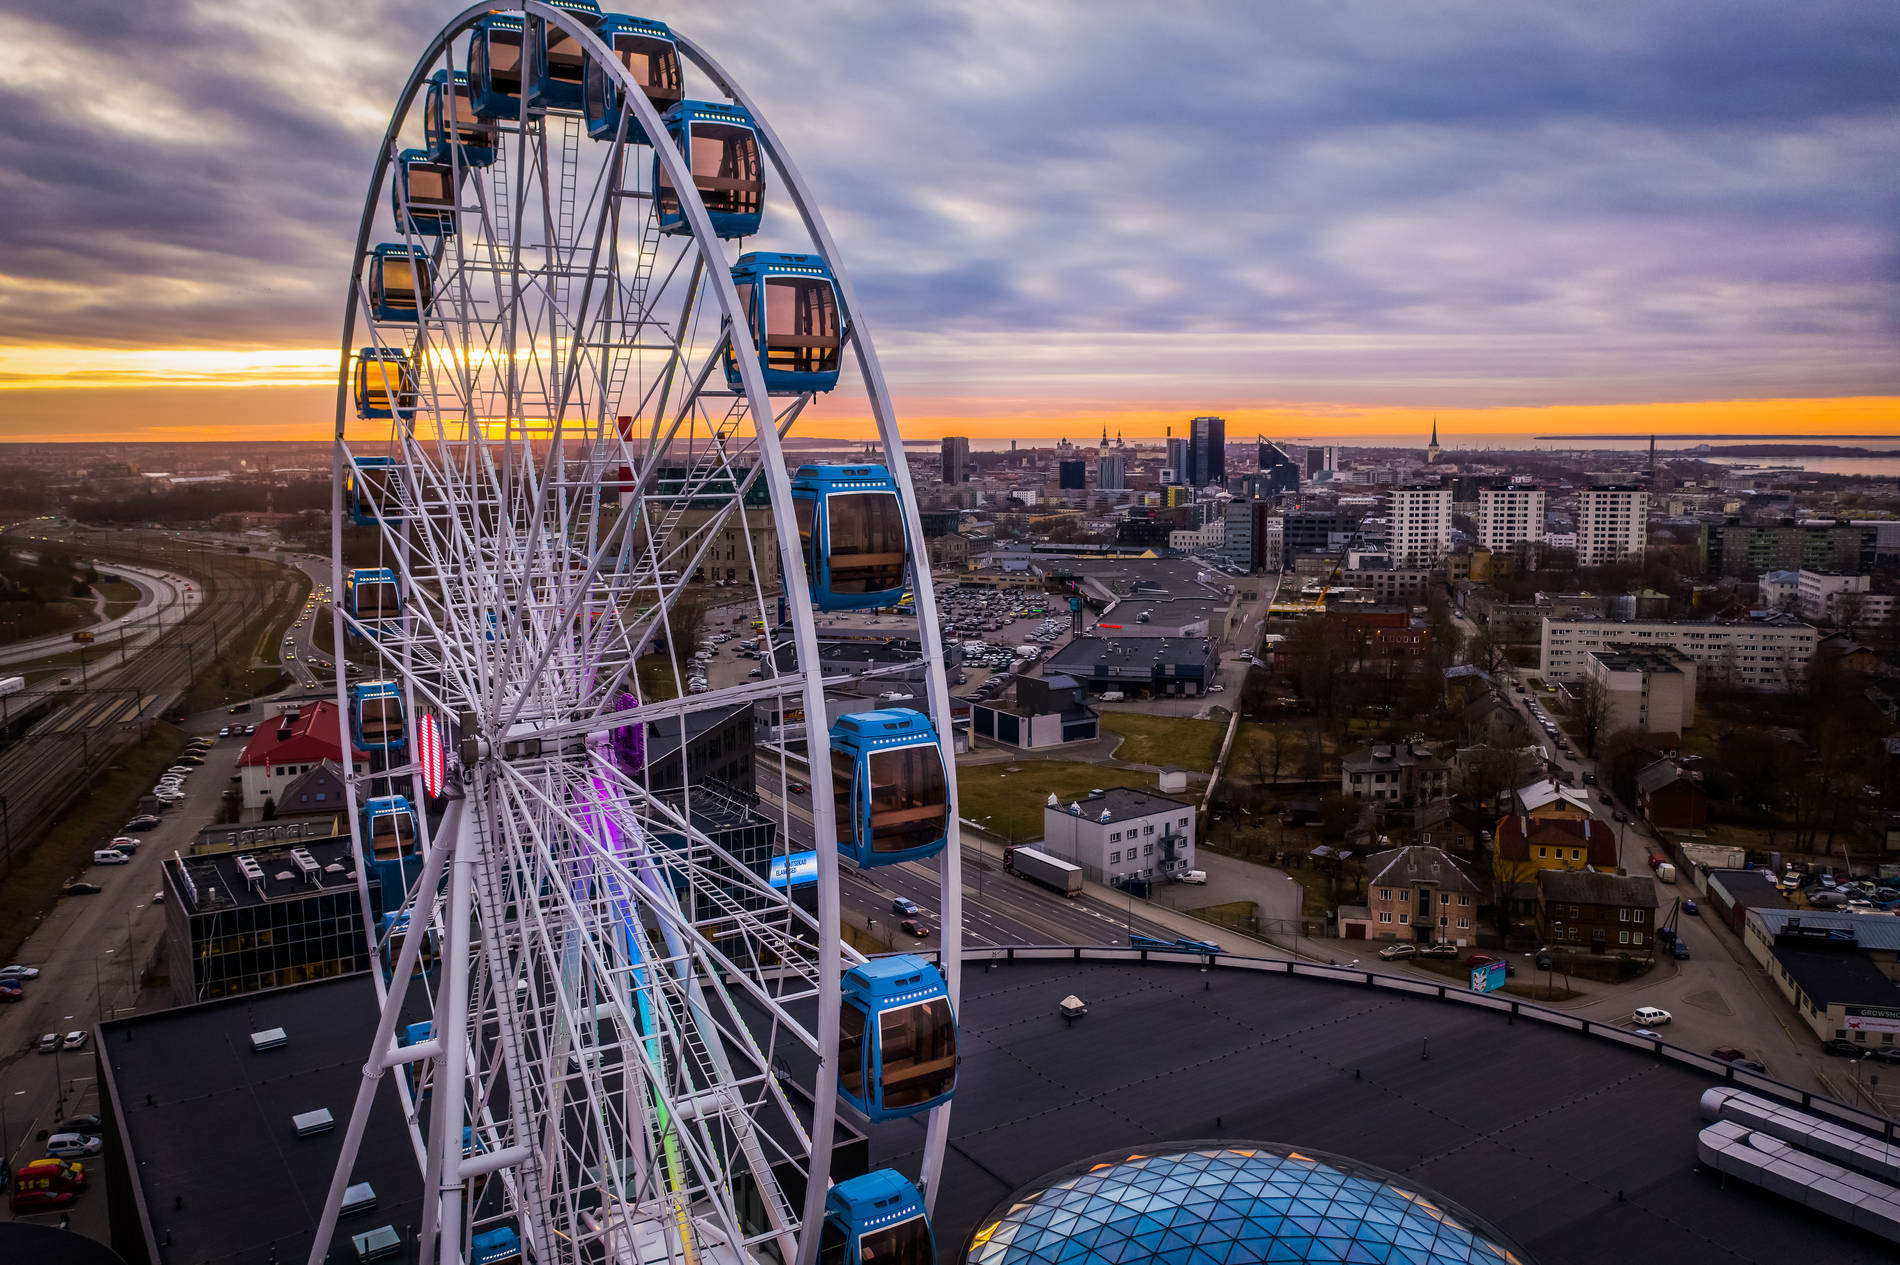 Skywheel of Tallinn and city view in the evening, Tallinn, Estonia.